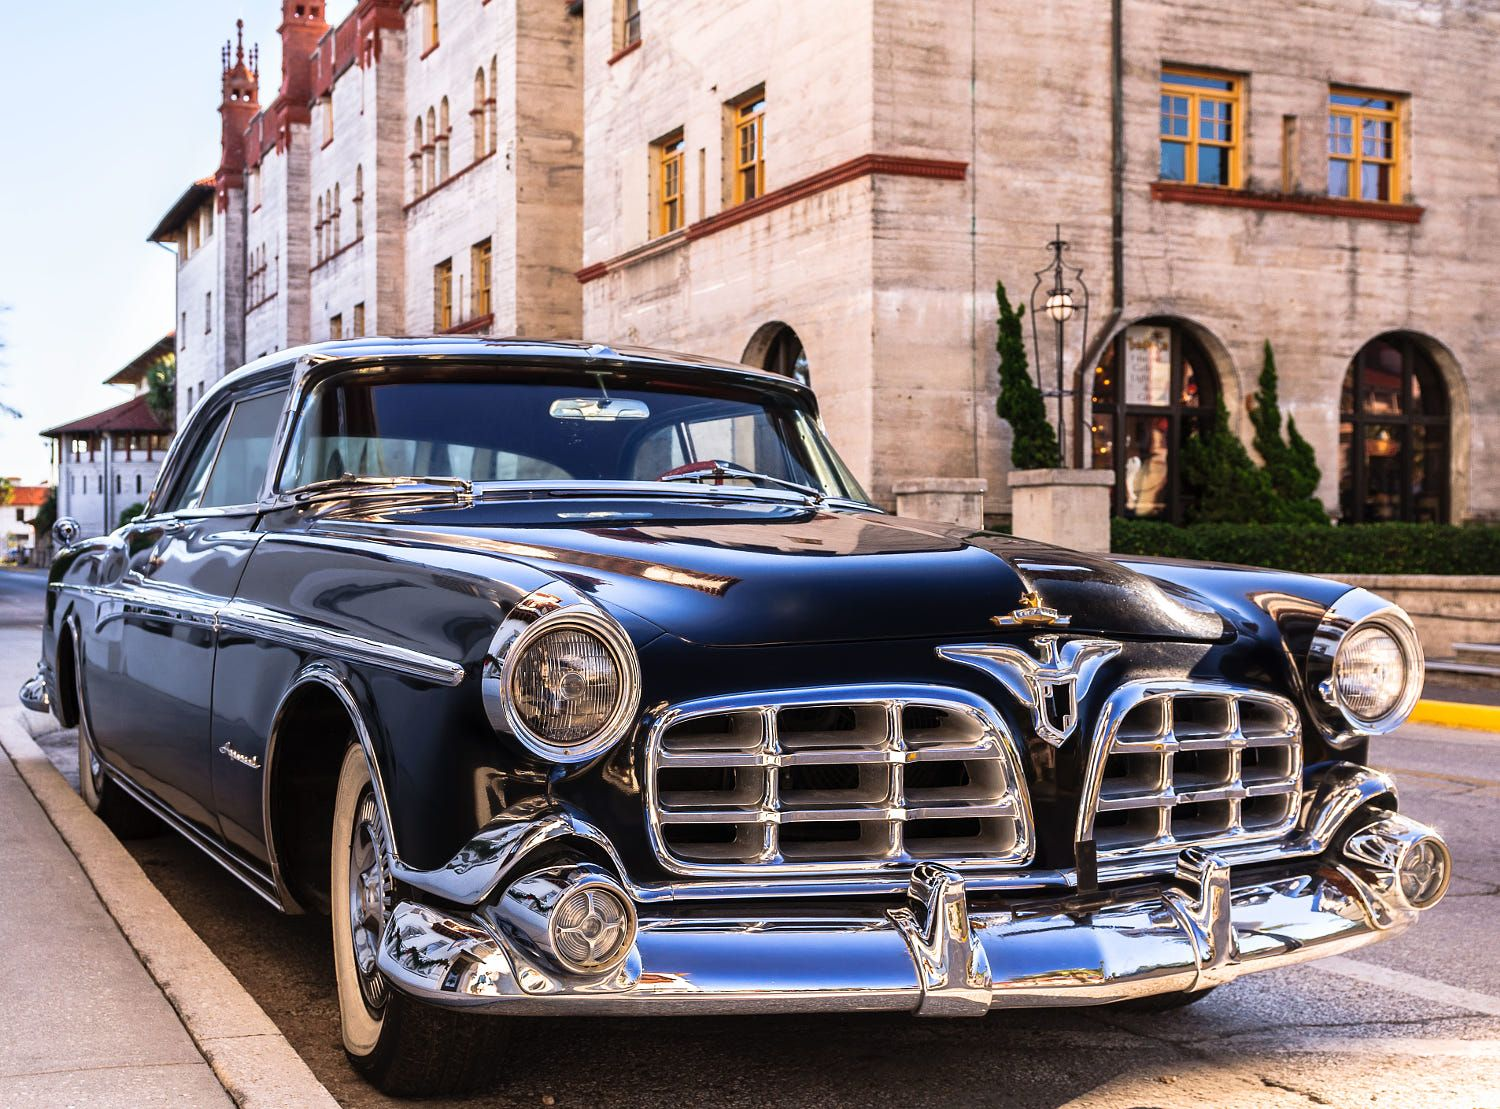 1955 Imperial Newport Coupe By Maksim And Sviatlana Sundukov On 500px Classic Cars Chrysler Imperial Mopar Cars